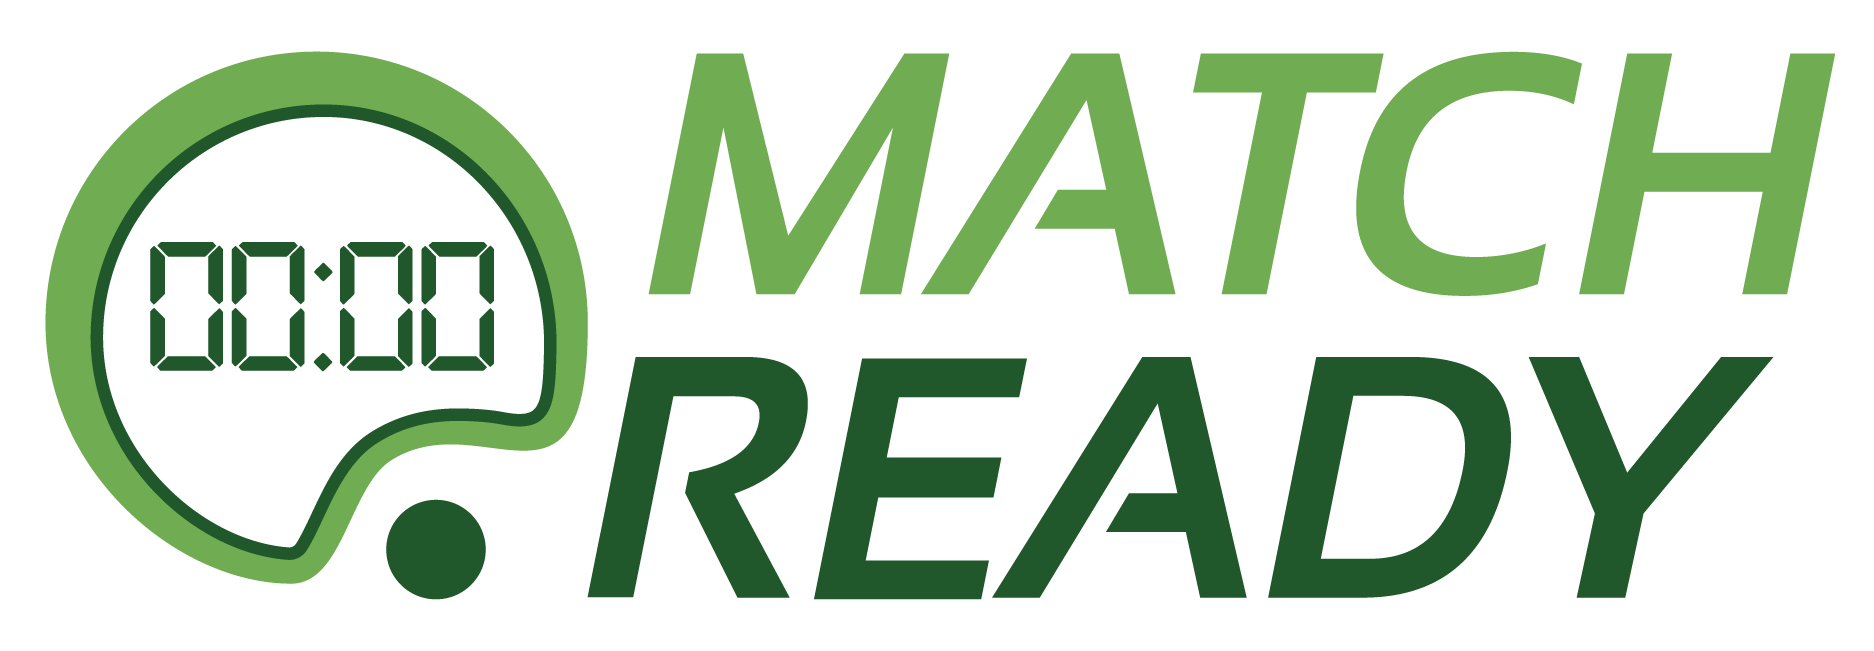 Matchready Clubs